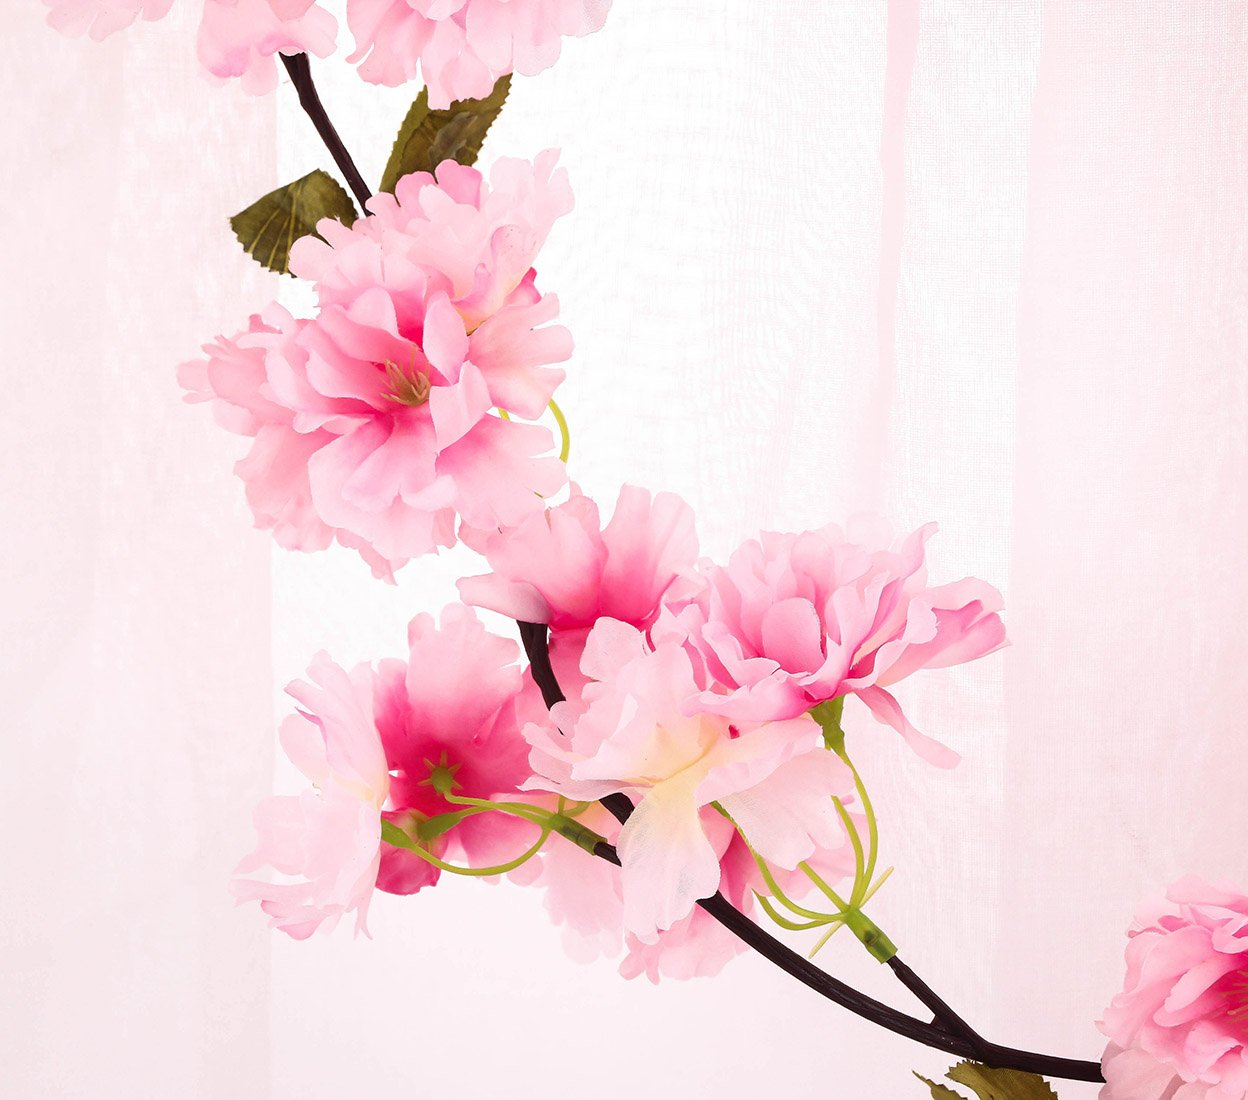 Charmly 2 Pcs Artificial Cherry Blossom Vine Faux Sakura Garland Oriental Cherry Wreath Hanging Plants Artificial Flowers Home Garden Yard Fence Party Wedding Decor Each 5.8 FT Pink